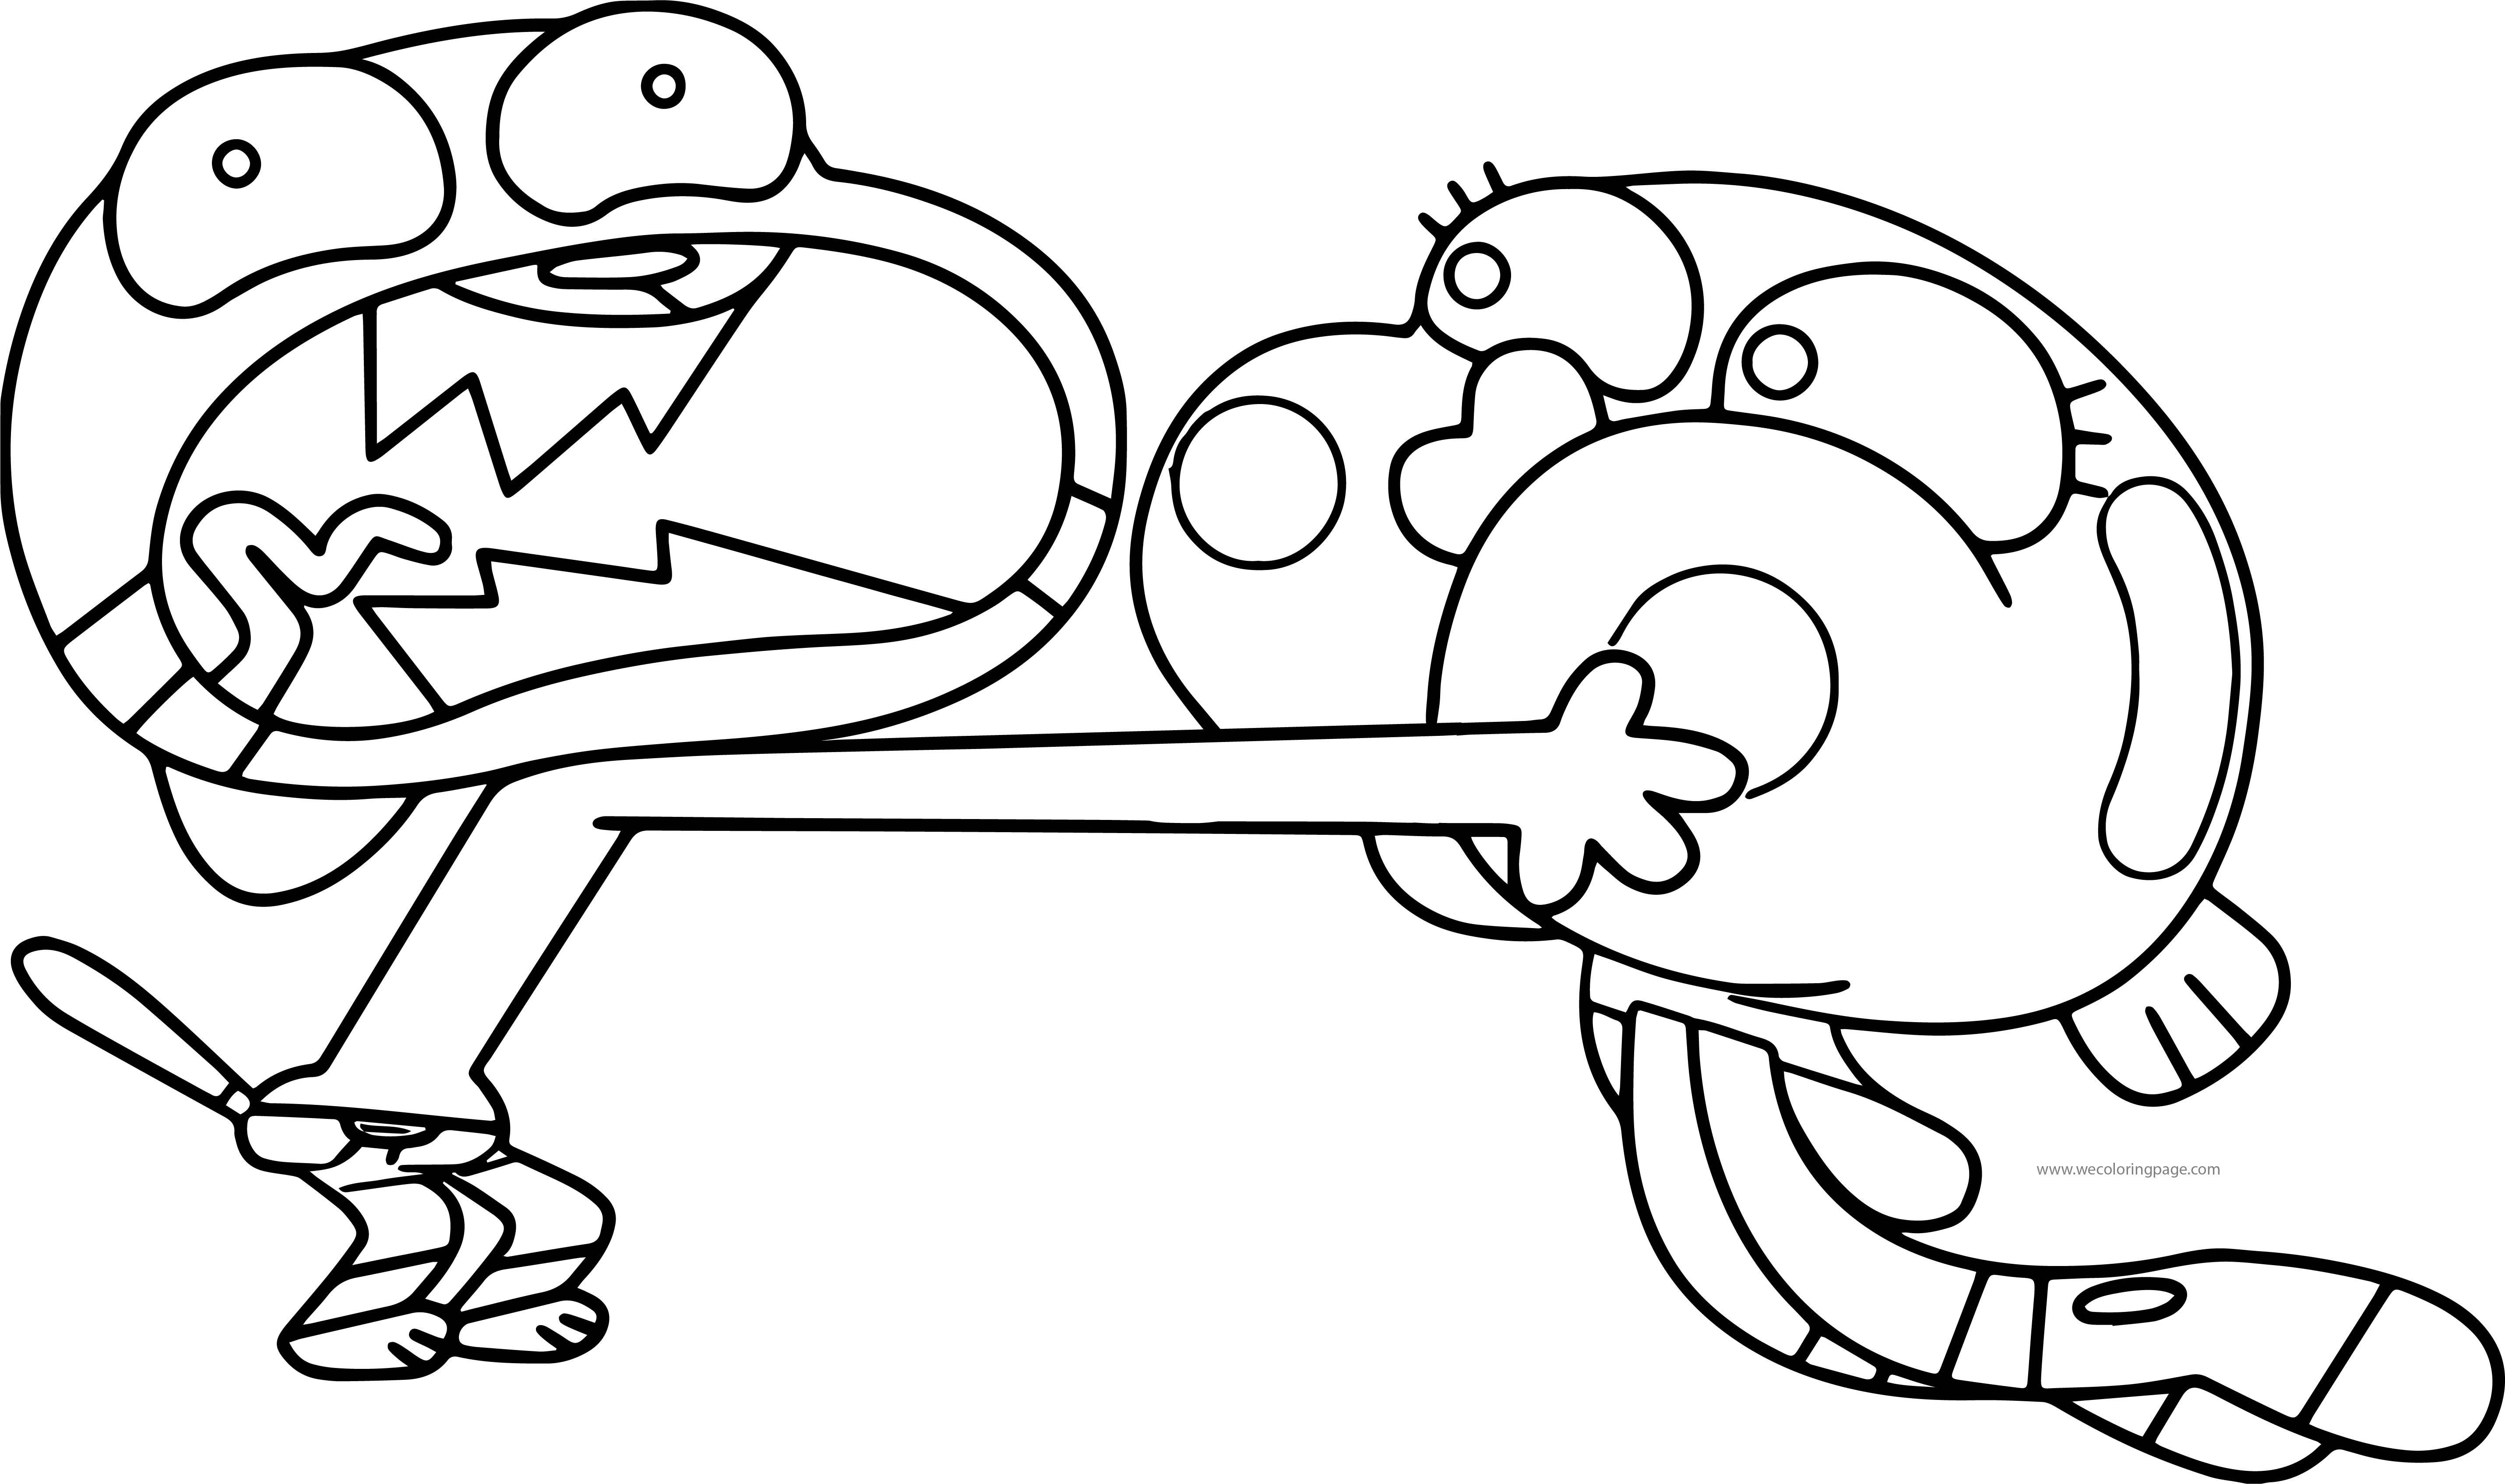 Pin By Wecoloringpage Coloring Pages On Wecoloringpage Coloring Pages Cartoon Coloring Pages Coloring Pages For Boys